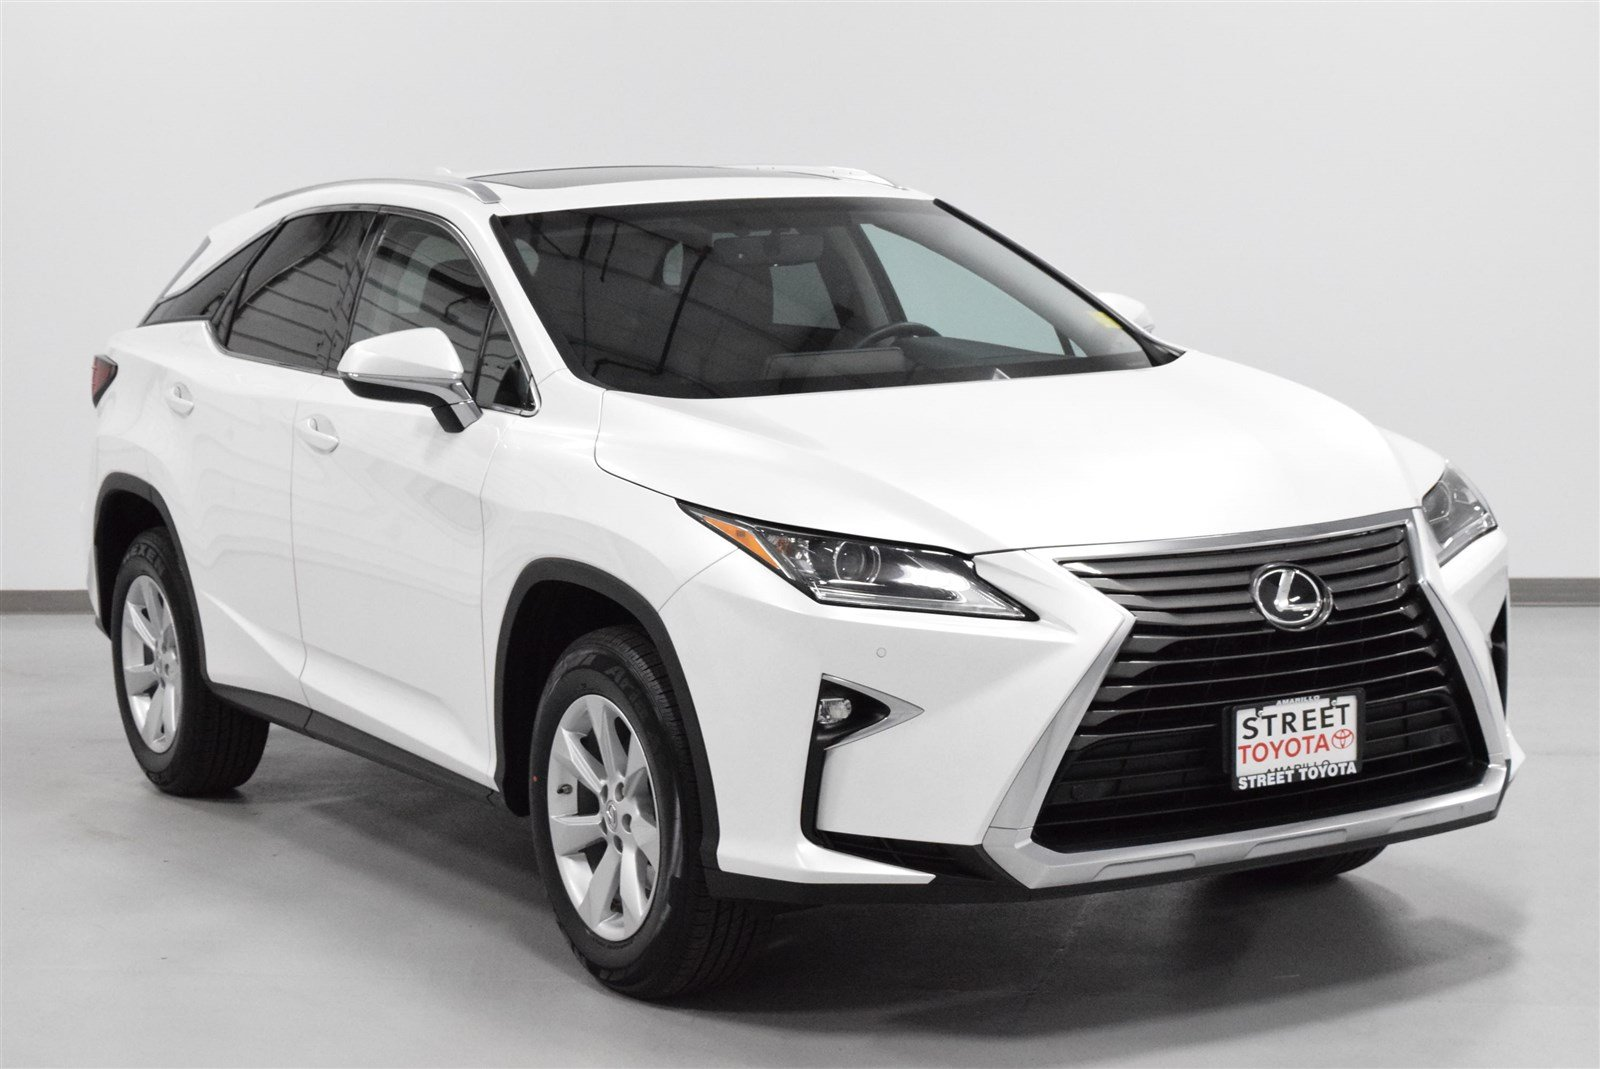 pre-owned 2016 lexus rx 350 for  in amarillo, tx | #44309